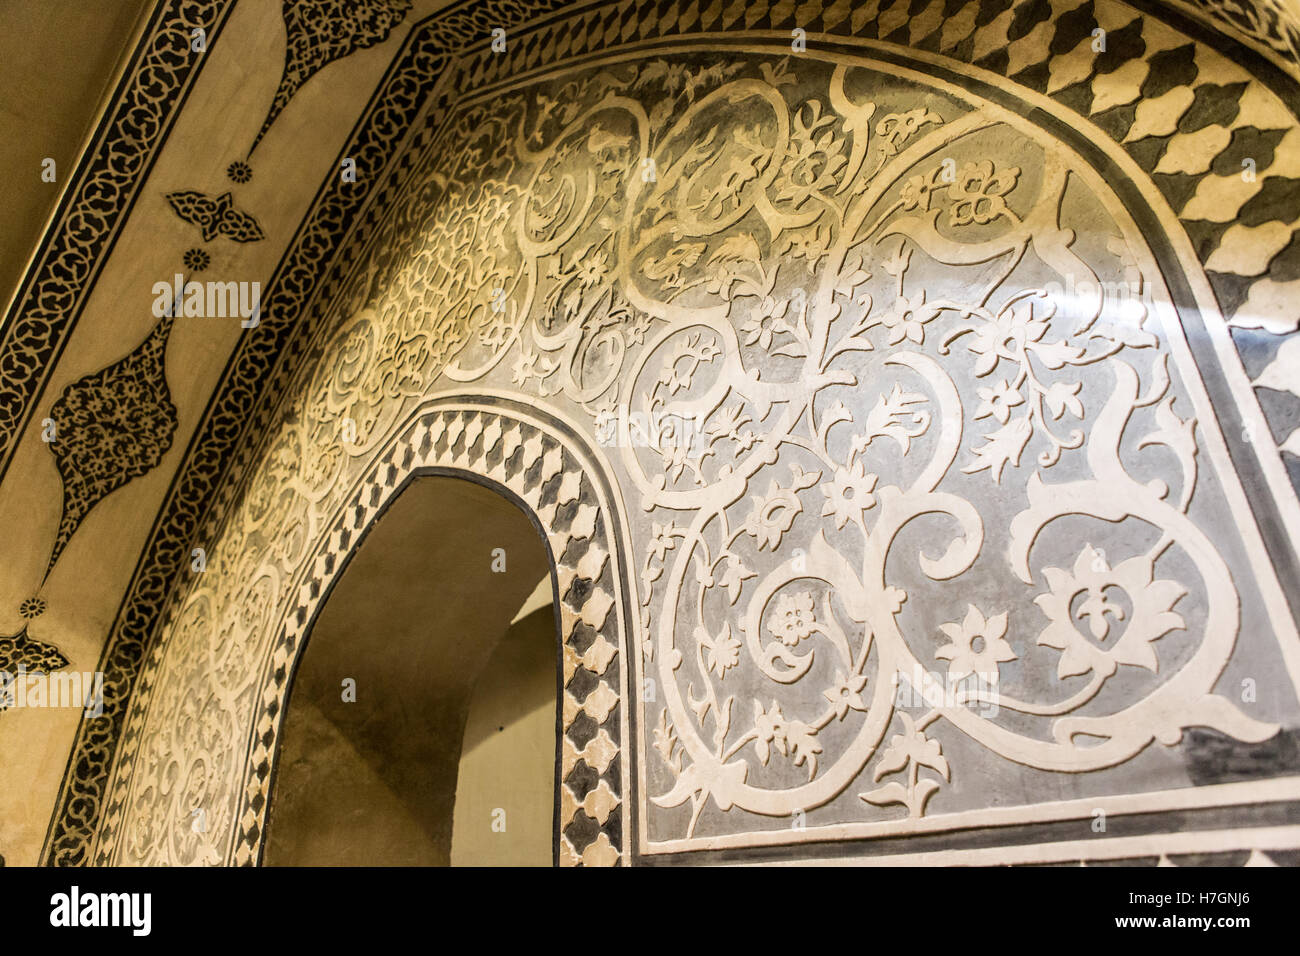 patterned arch in bathhouse - Stock Image